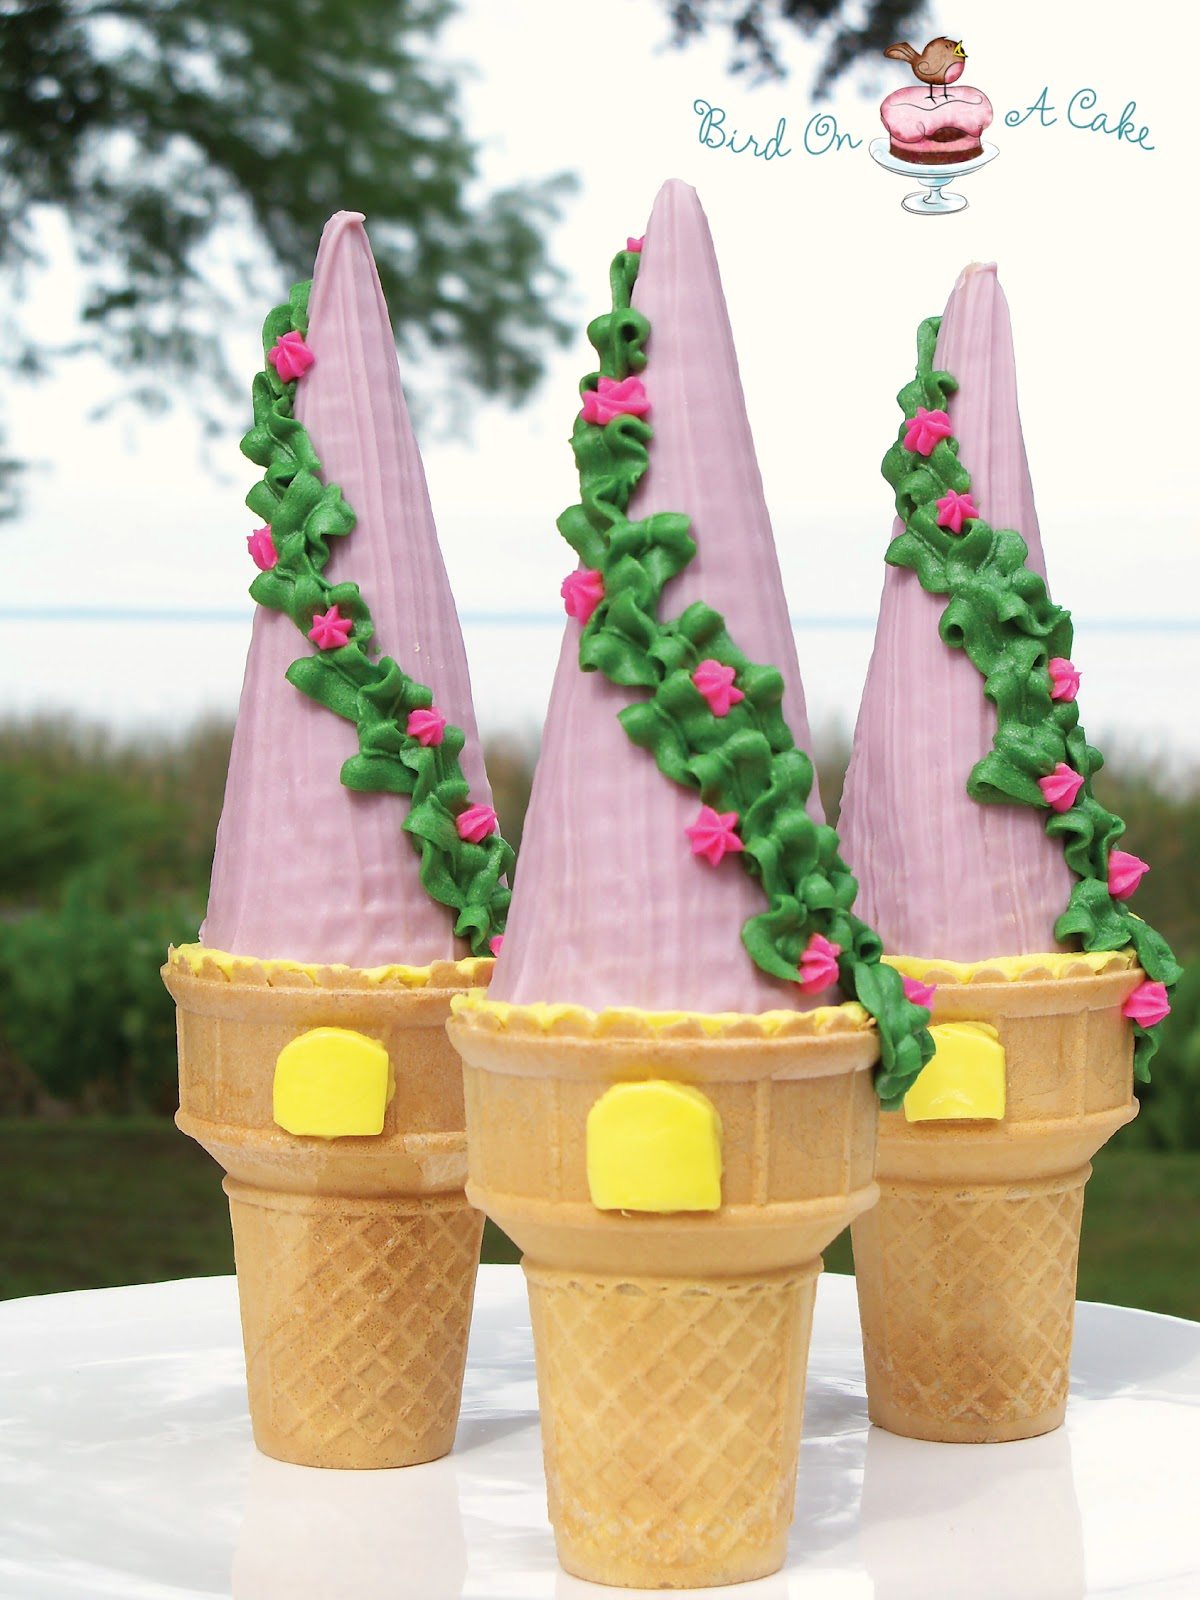 How To Make A Rapunzel Tower Cake